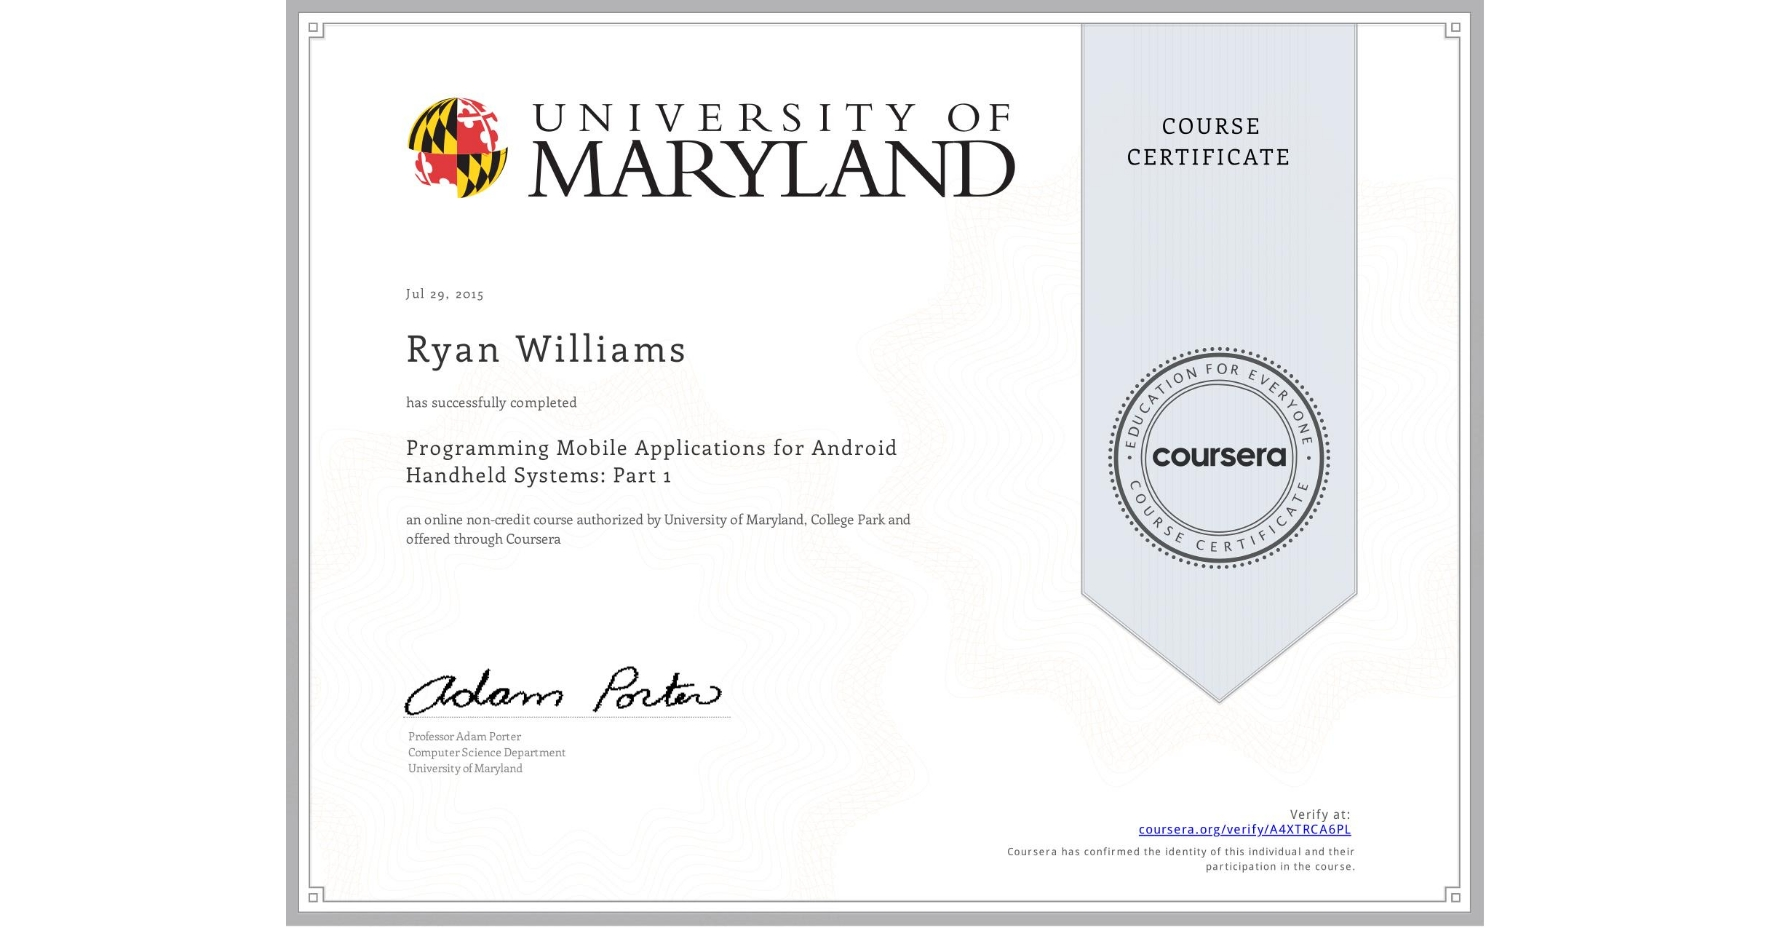 View certificate for Ryan Williams, Programming Mobile Applications for Android Handheld Systems: Part 1, an online non-credit course authorized by University of Maryland, College Park and offered through Coursera